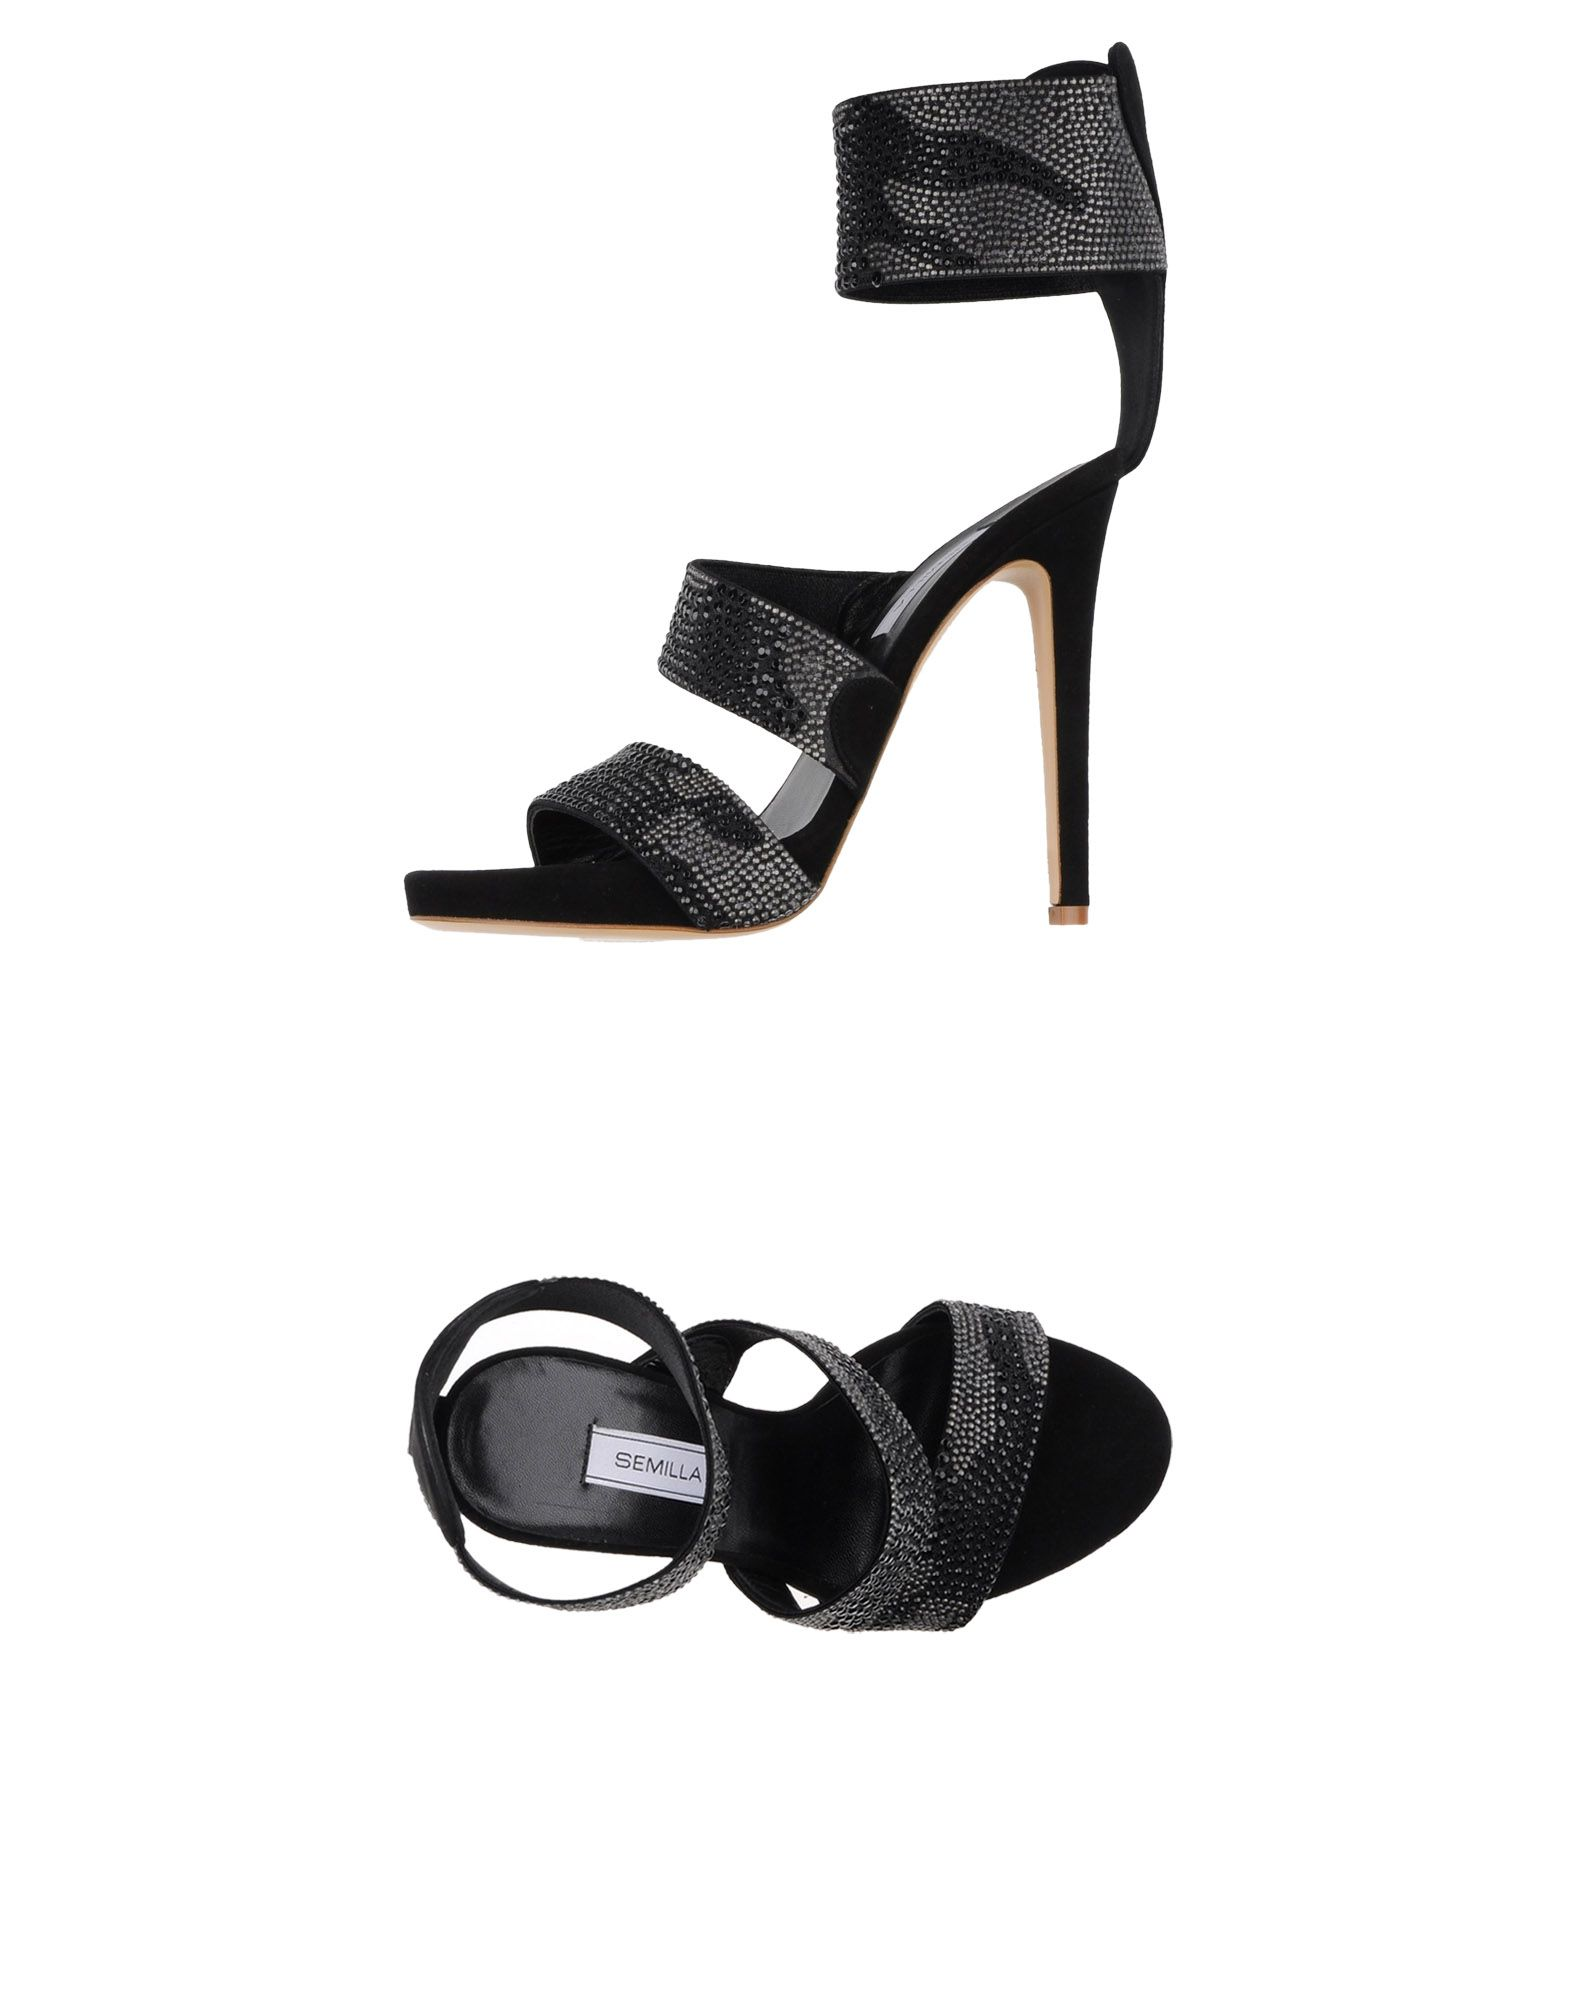 SEMILLA Sandals in Black